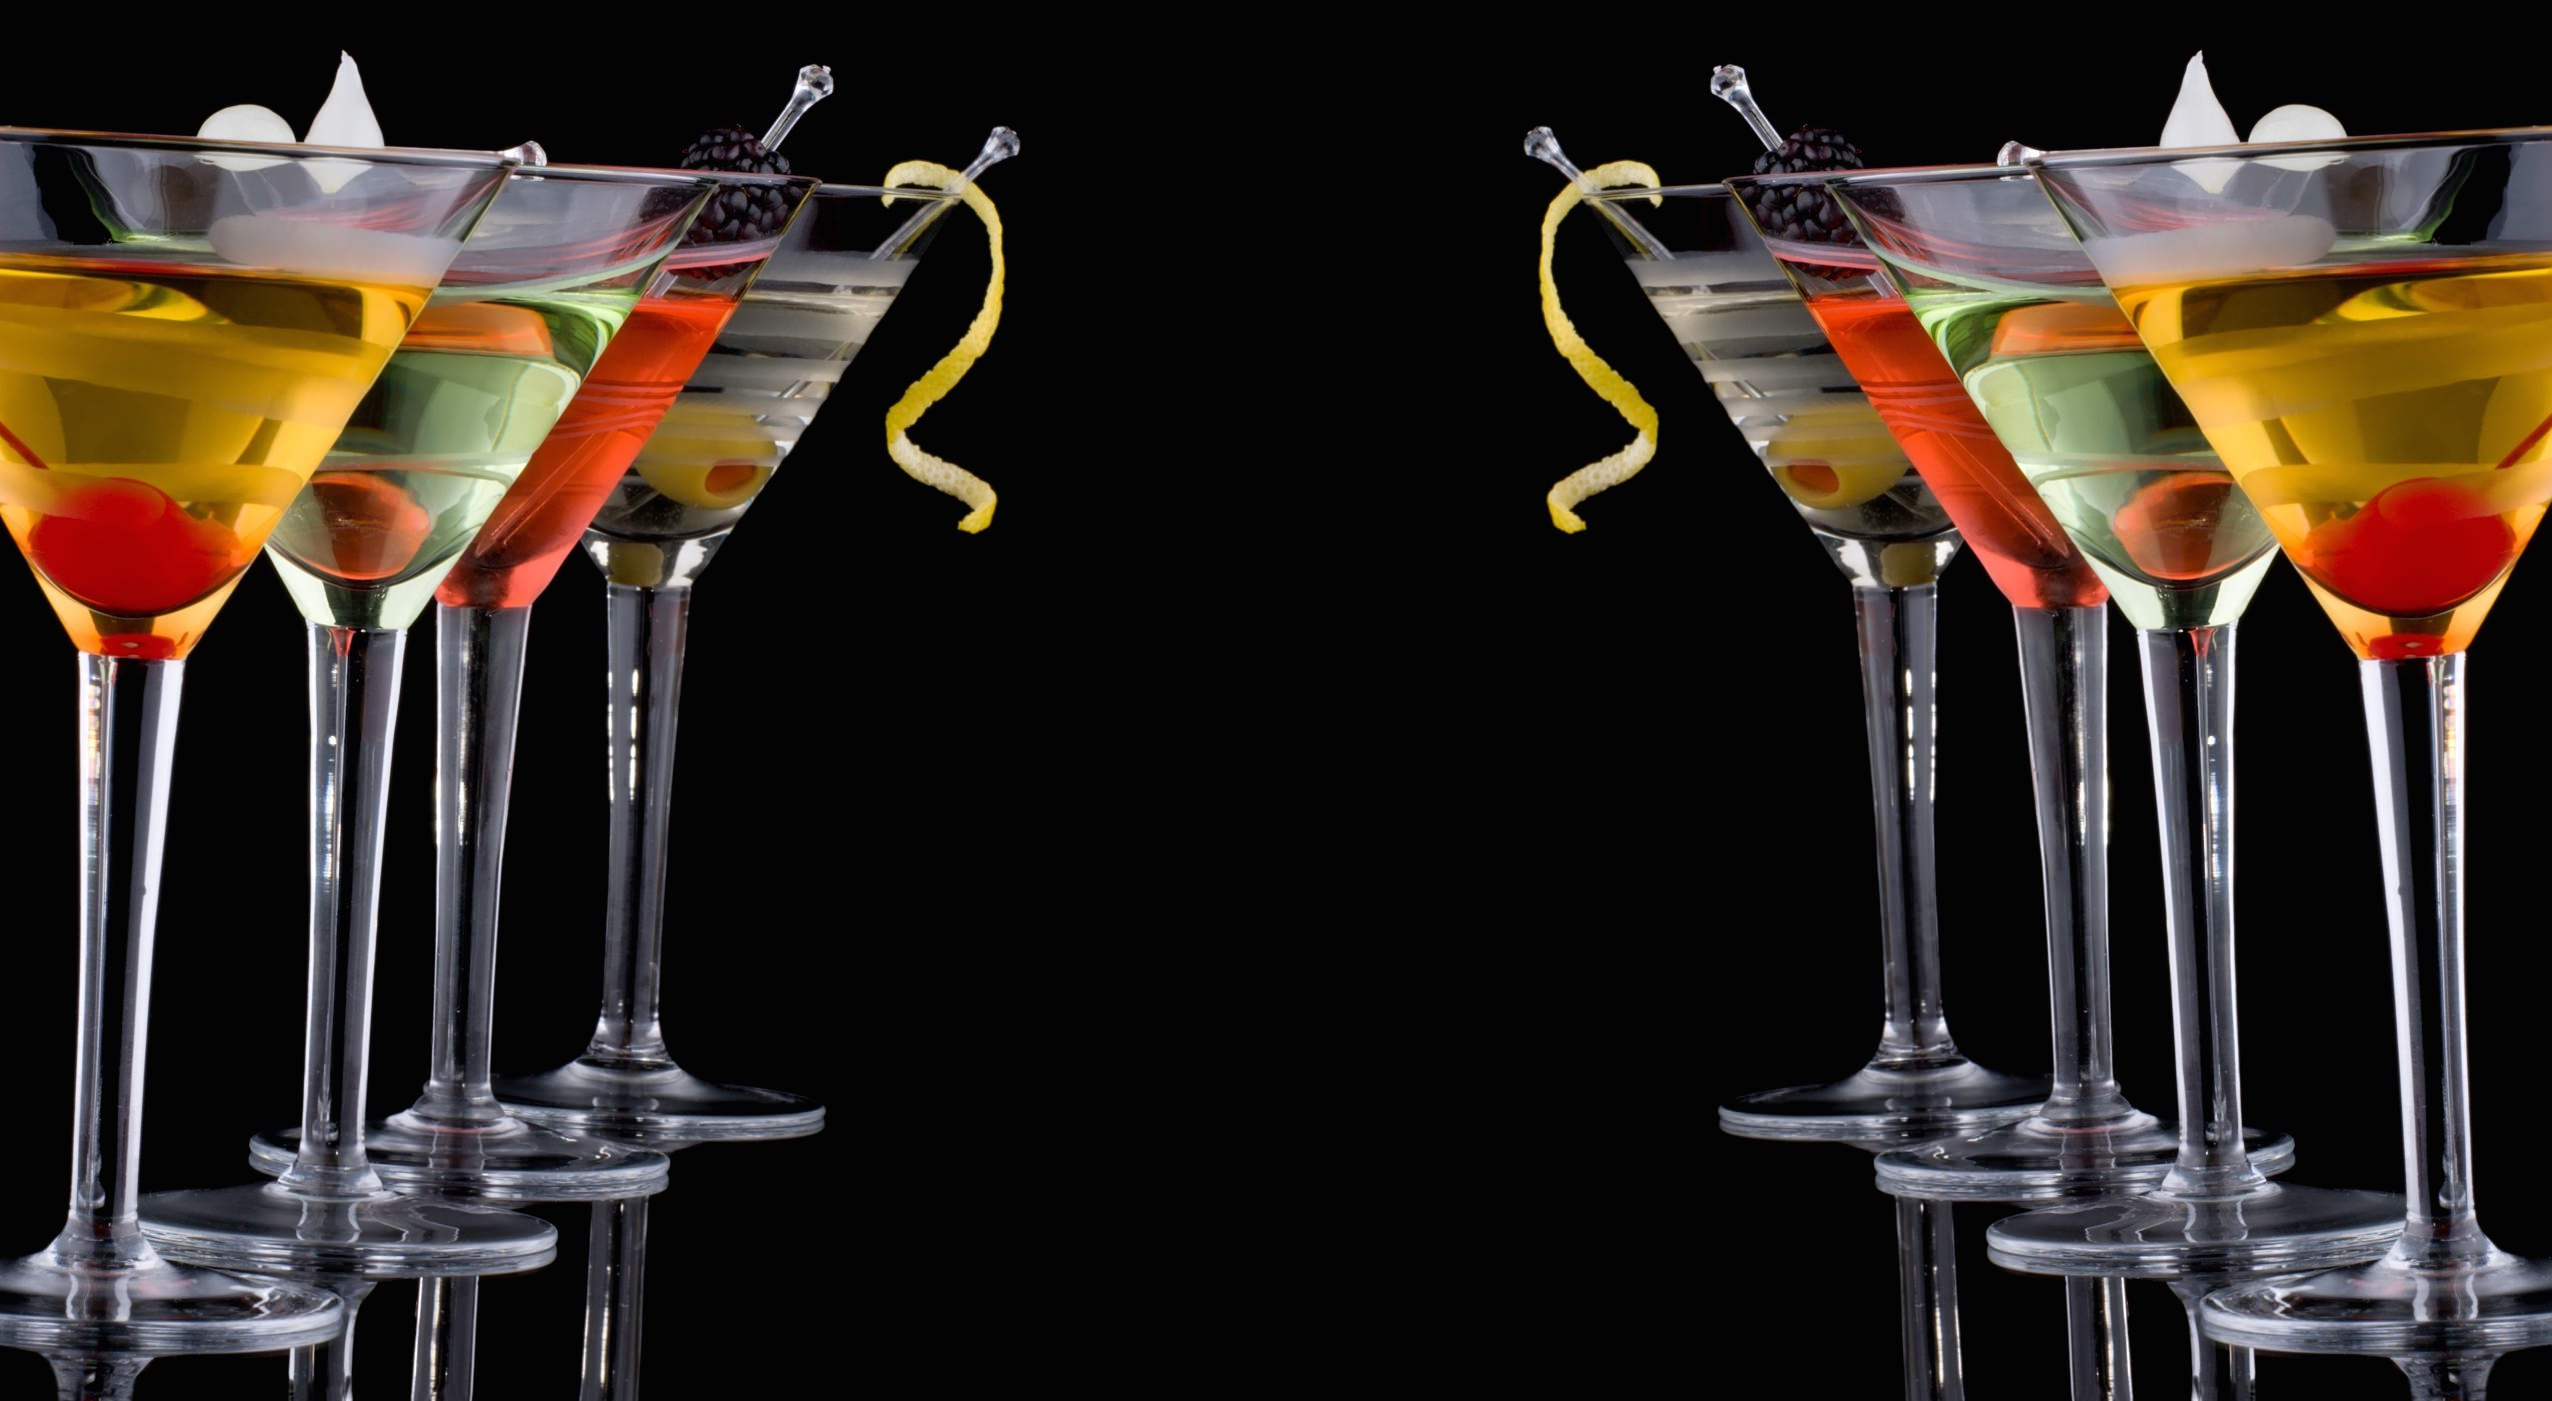 cocktails_drinks-wallpaper-2560x1440